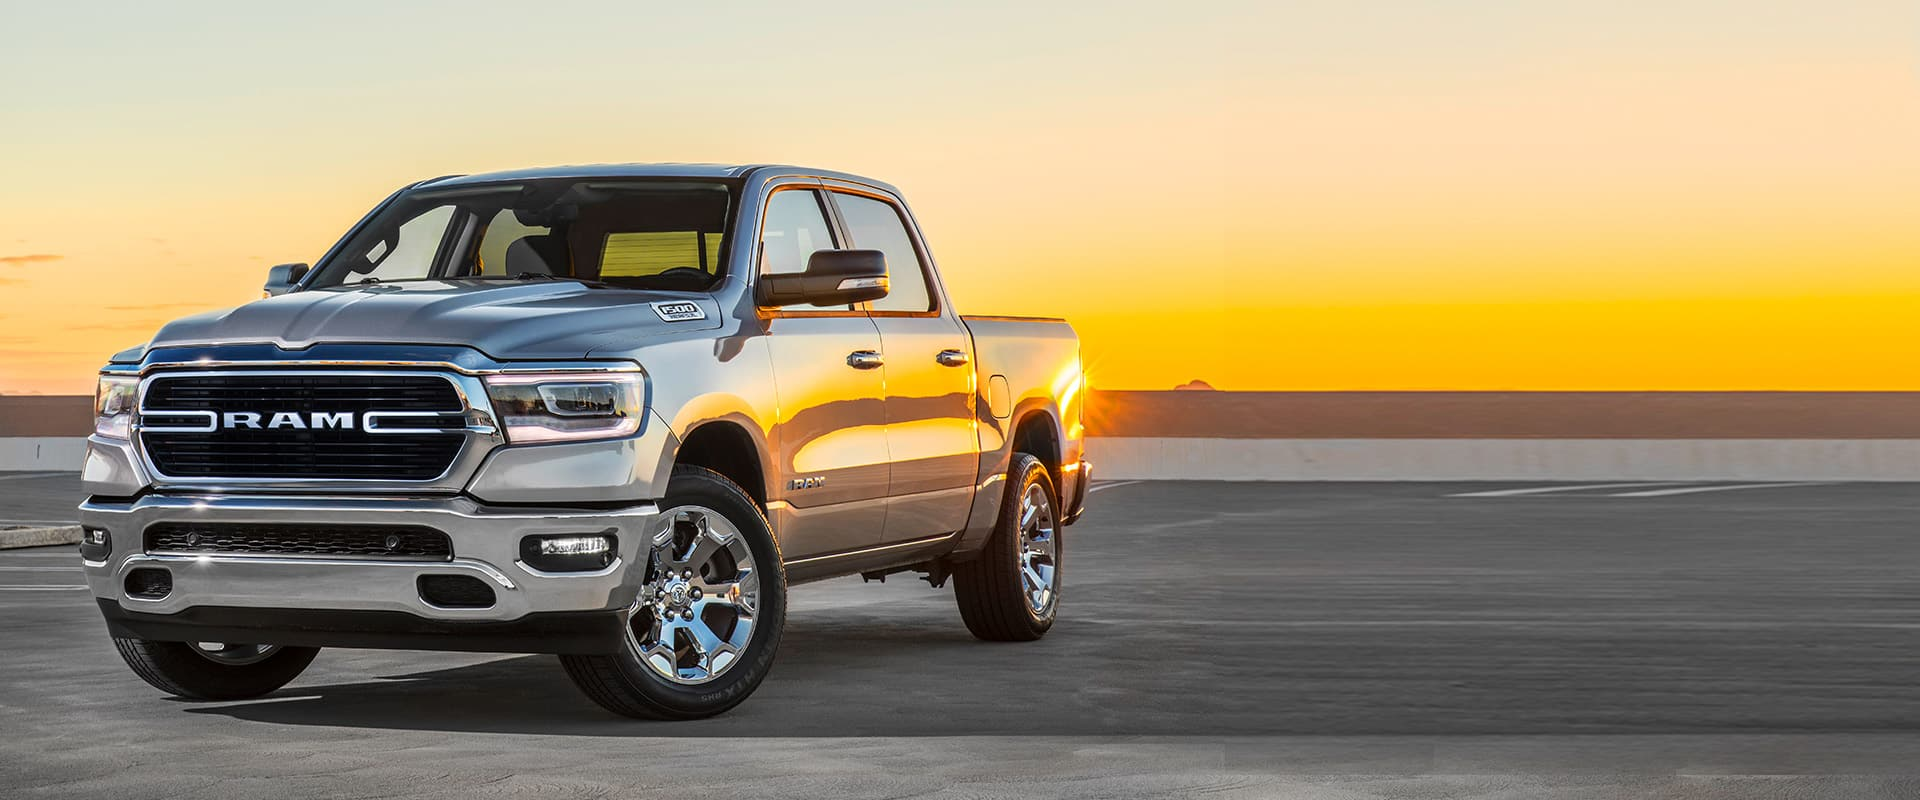 Ram Ecodiesel Specs >> All-New 2019 Ram 1500 – More Space. More Storage. More Technology